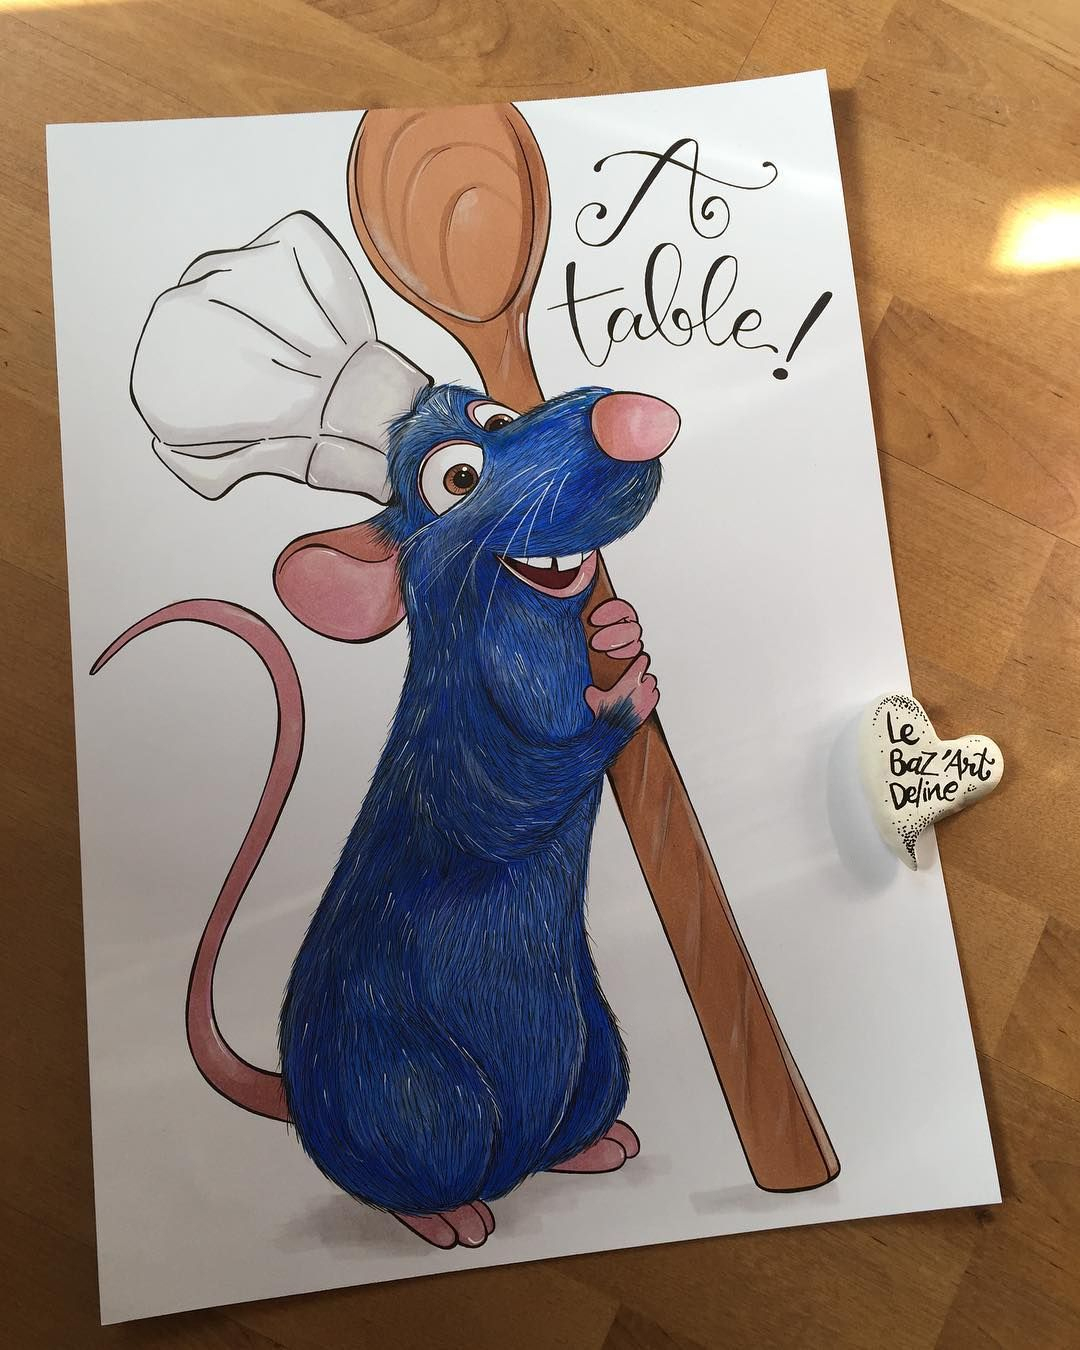 Rauille #rat #remy #disneylandparis #disney #disneyland concernant Dessin Ratatouille